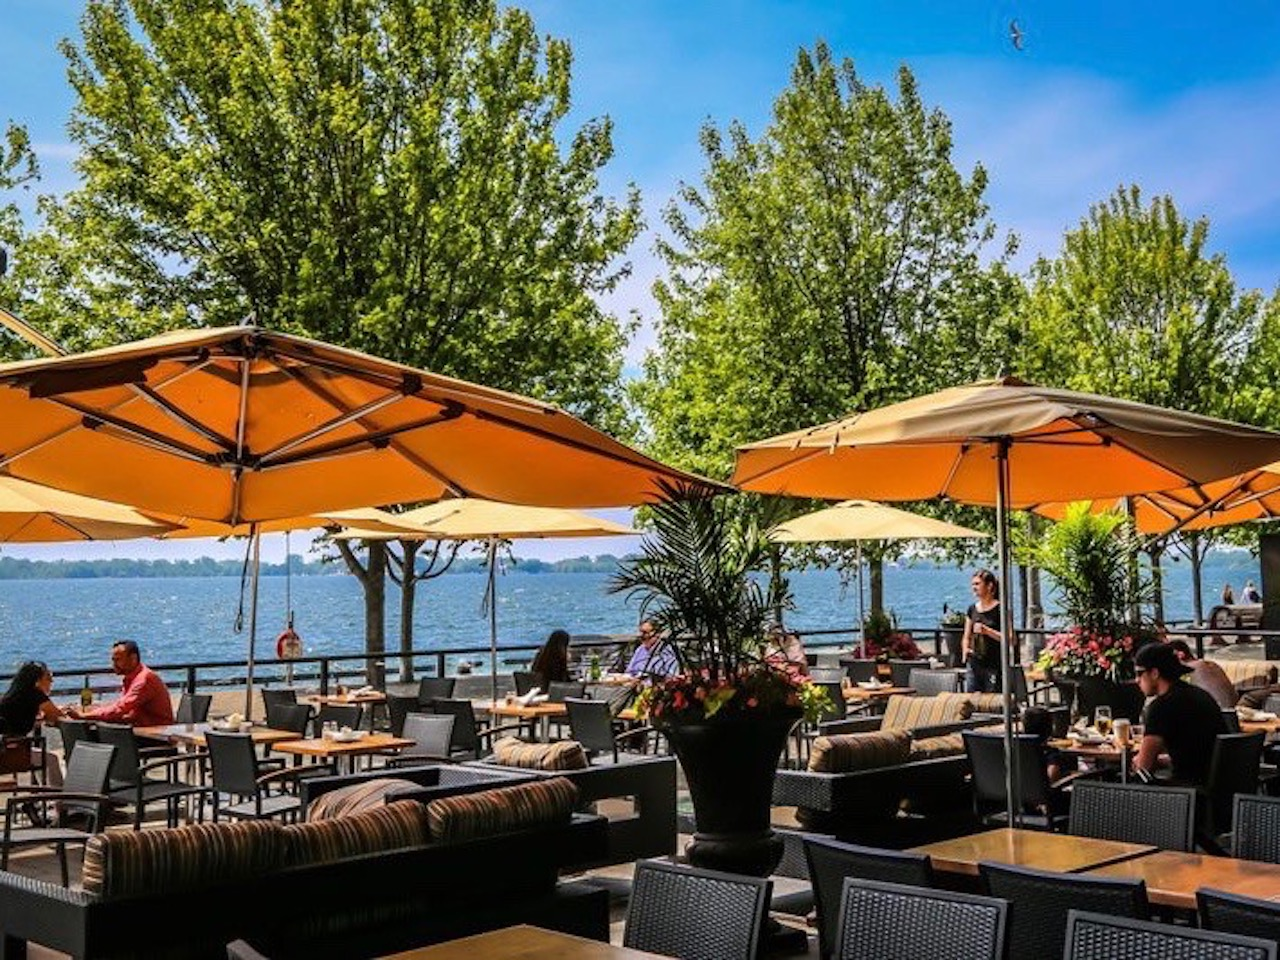 Sunny patio with umbrellas overlooking the lake